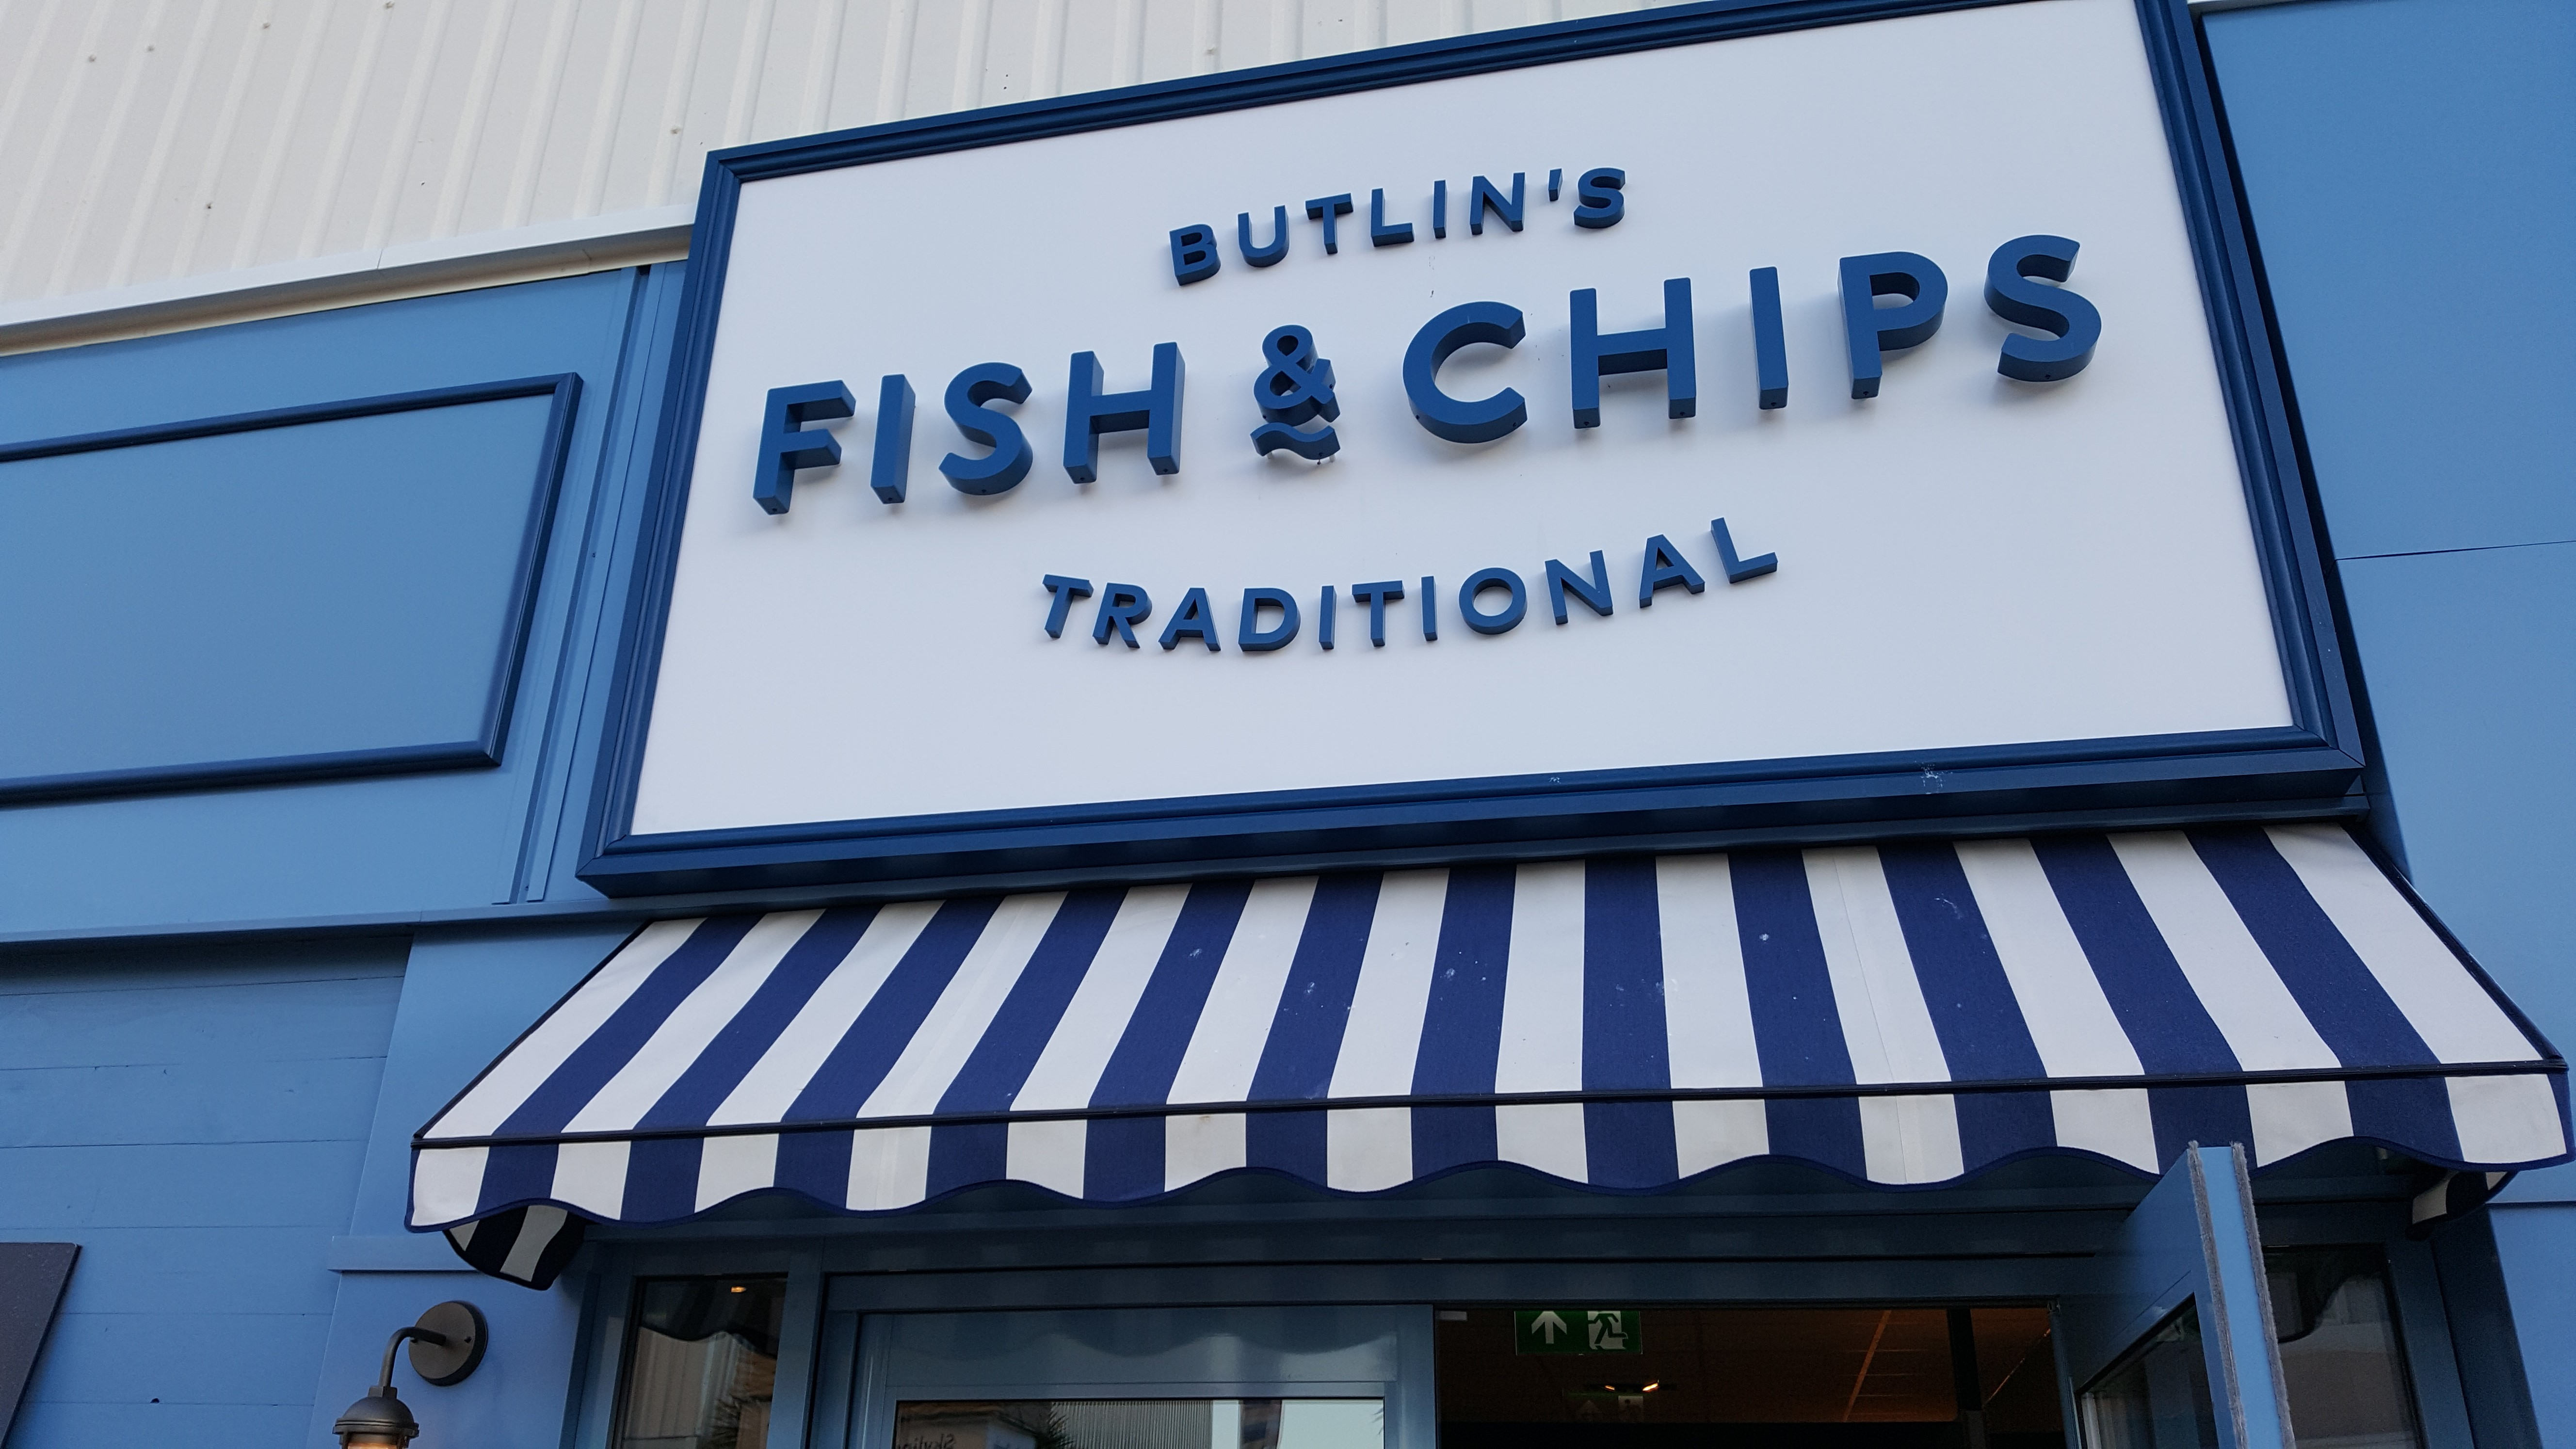 introducing butlin's traditional fish and chips restaurant